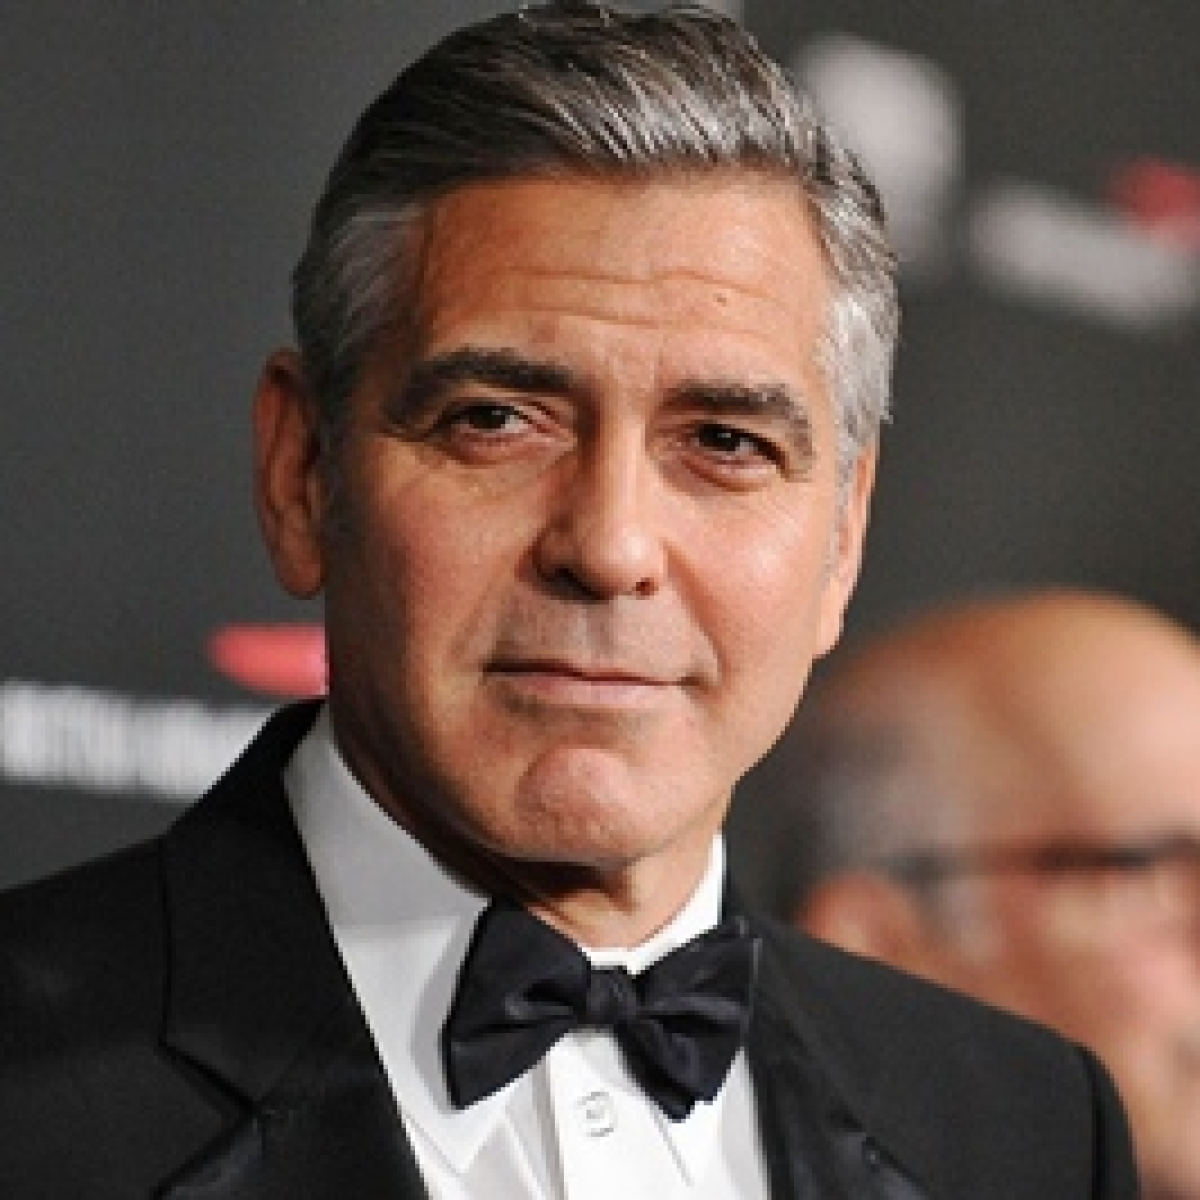 George Clooney on George Floyd's death: 'Racism is greatest pandemic'